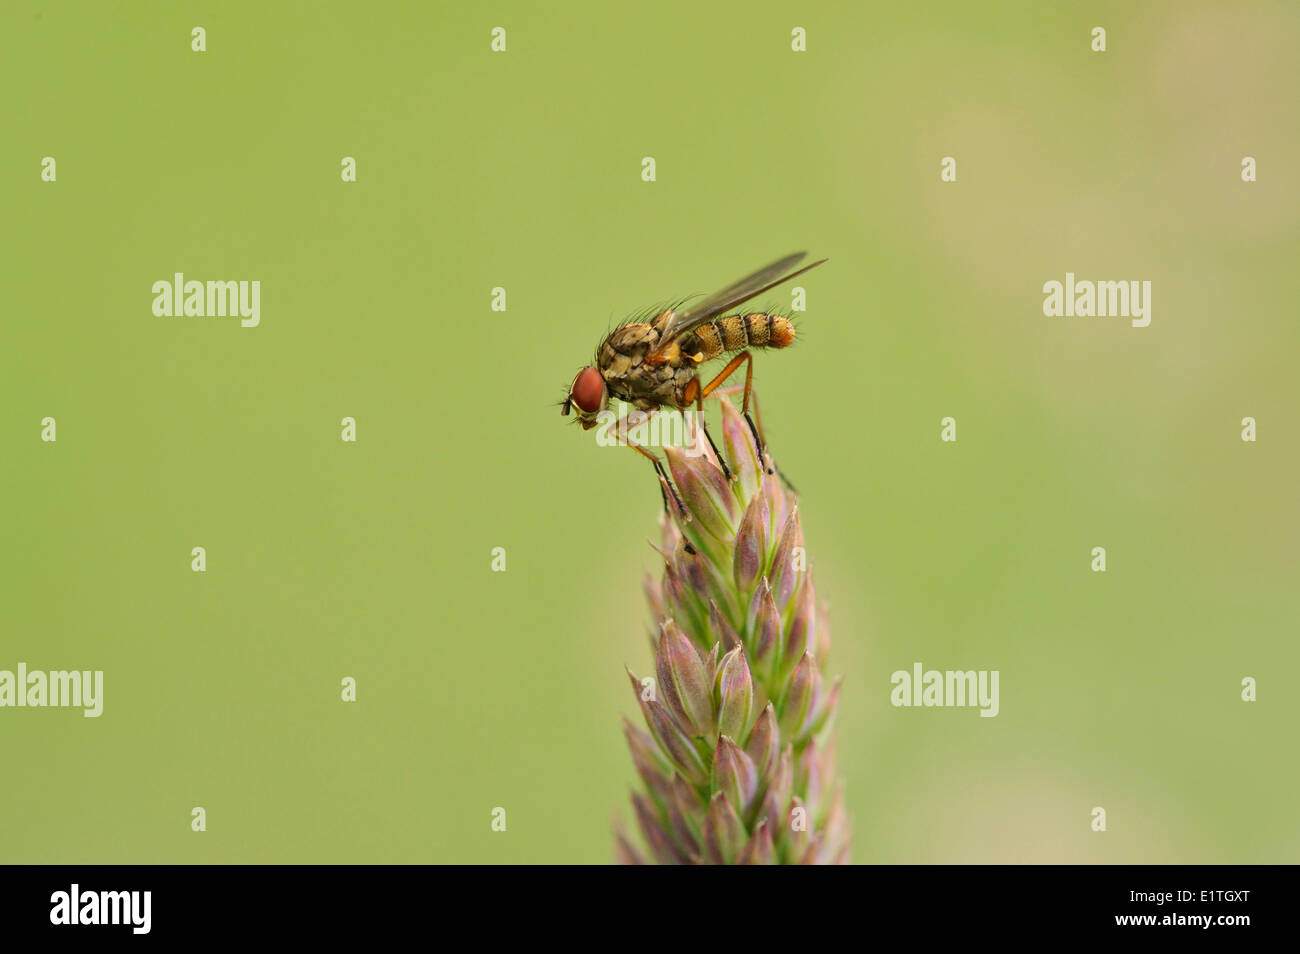 Root Maggot Fly, Anthomyiidae, Saanich BC - Stock Image